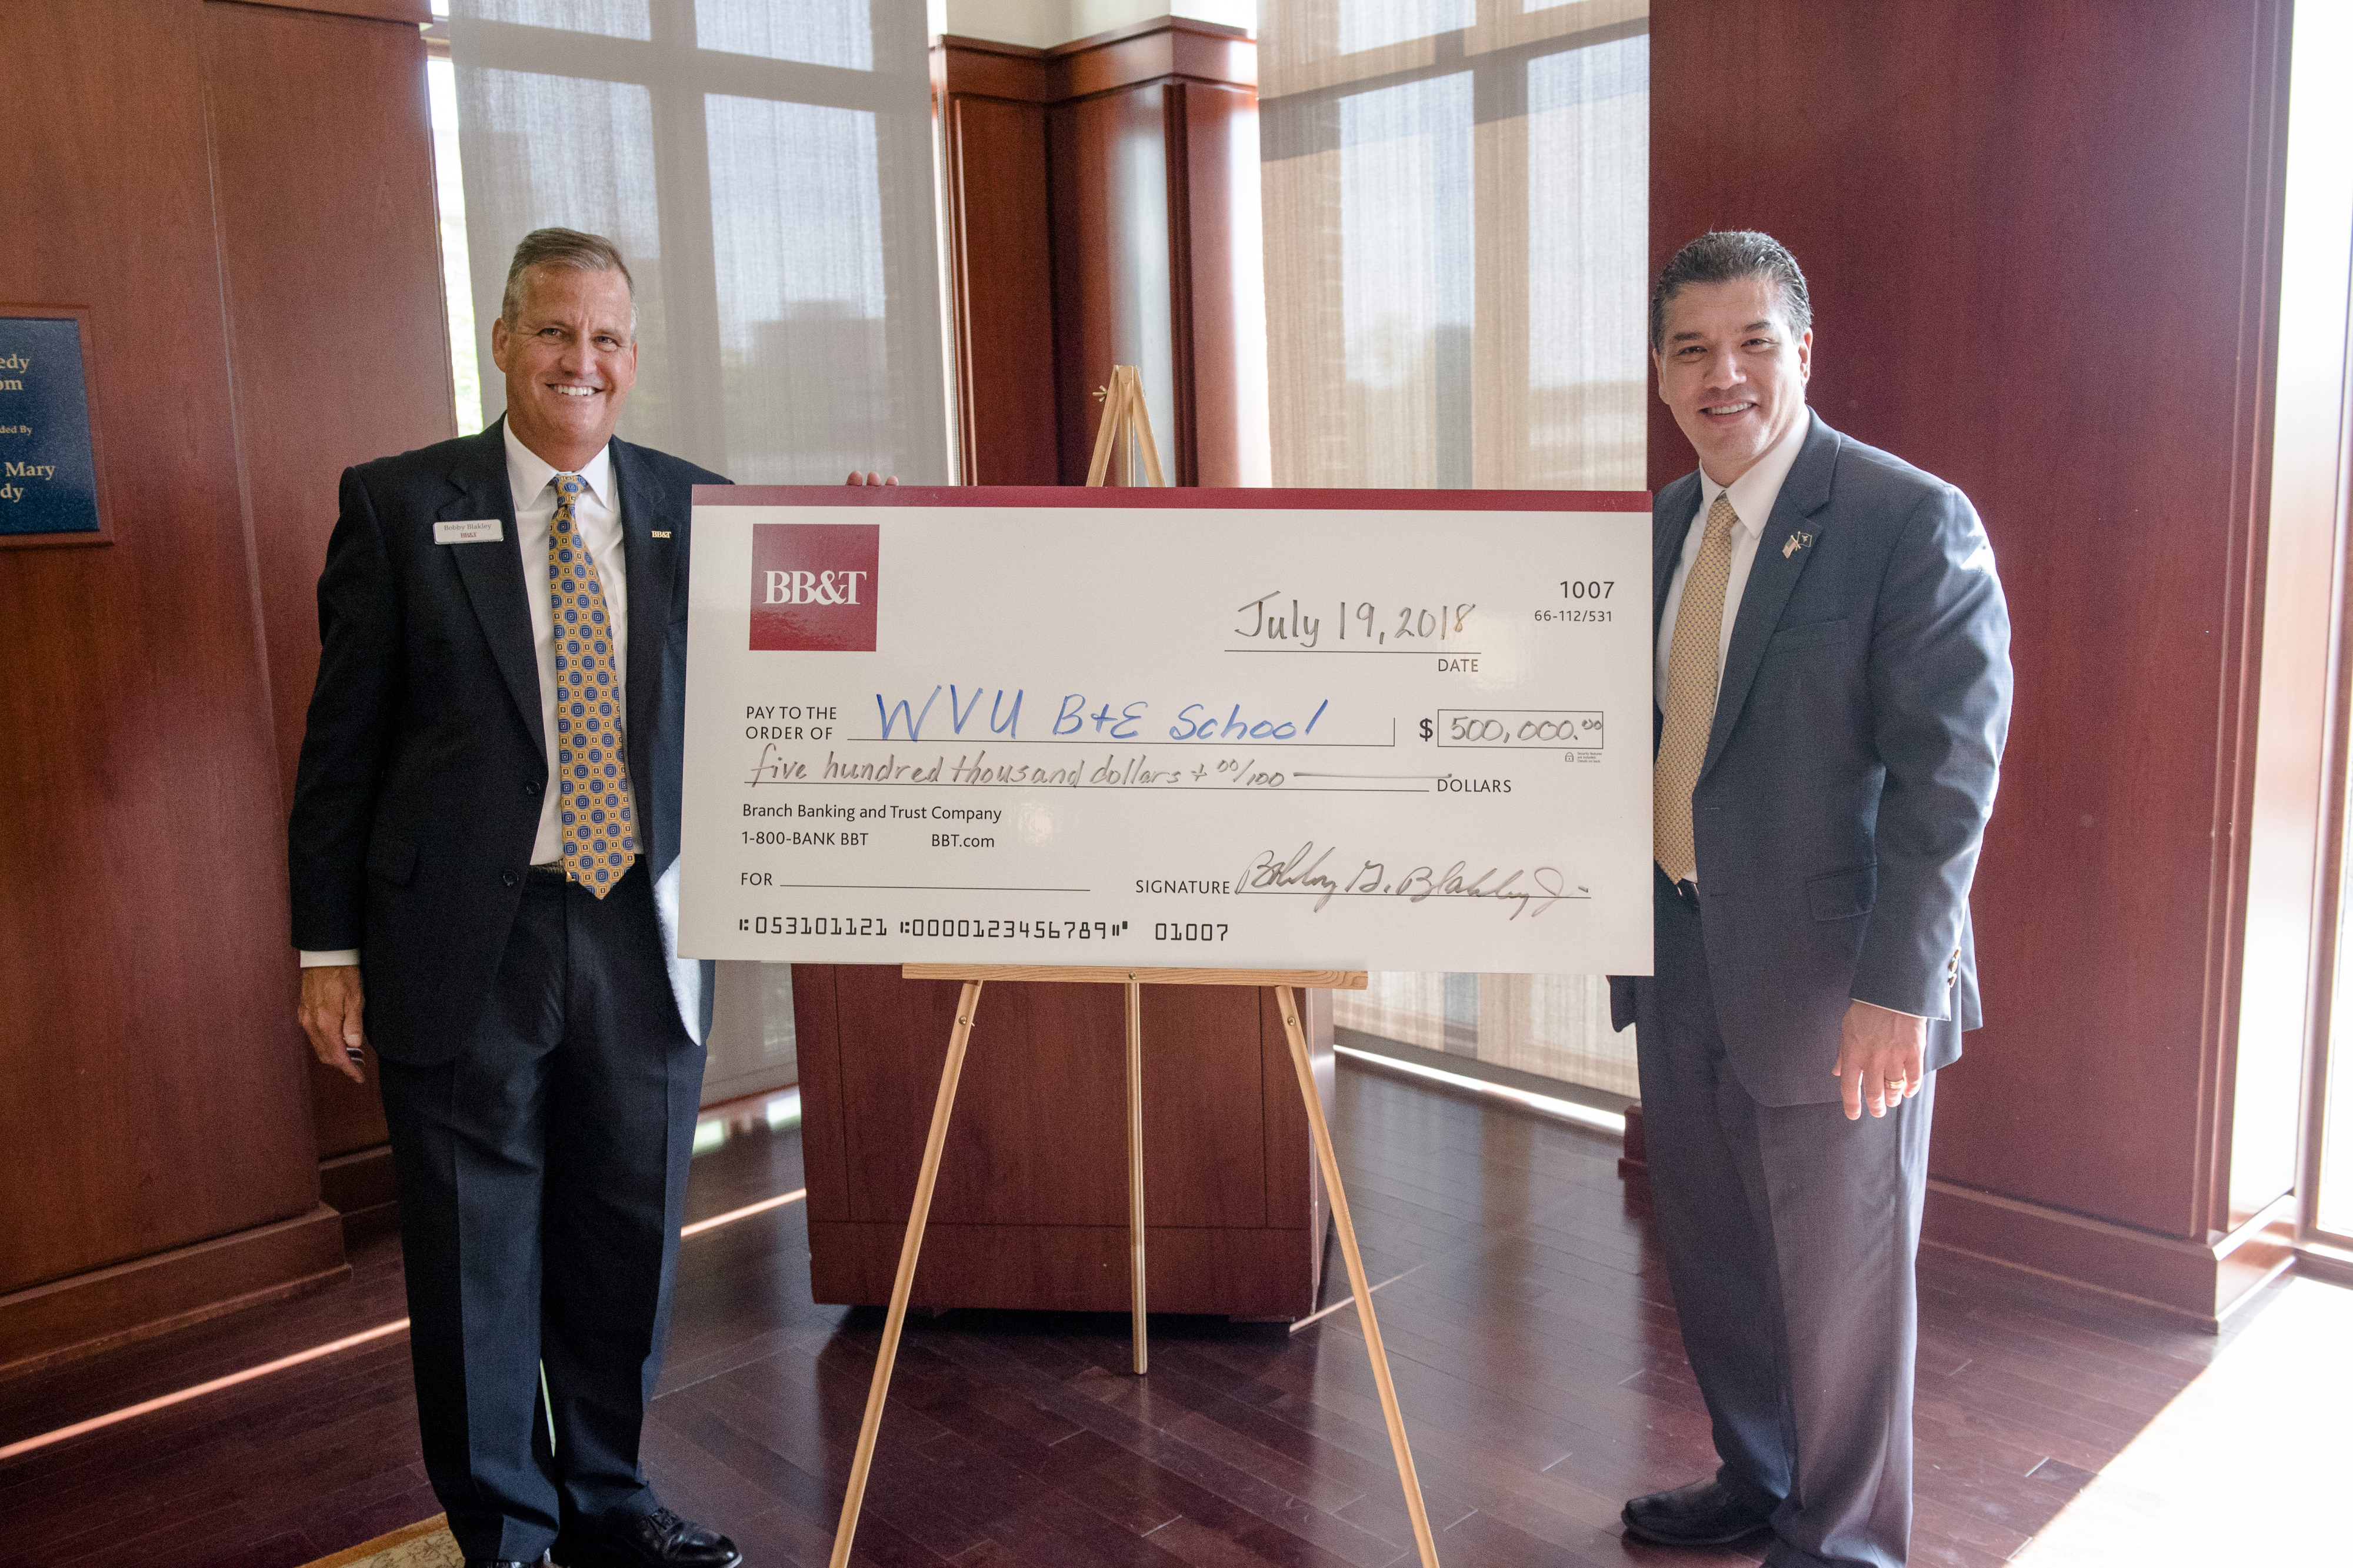 Two men flank a large check for $500,0000 situated on an easel